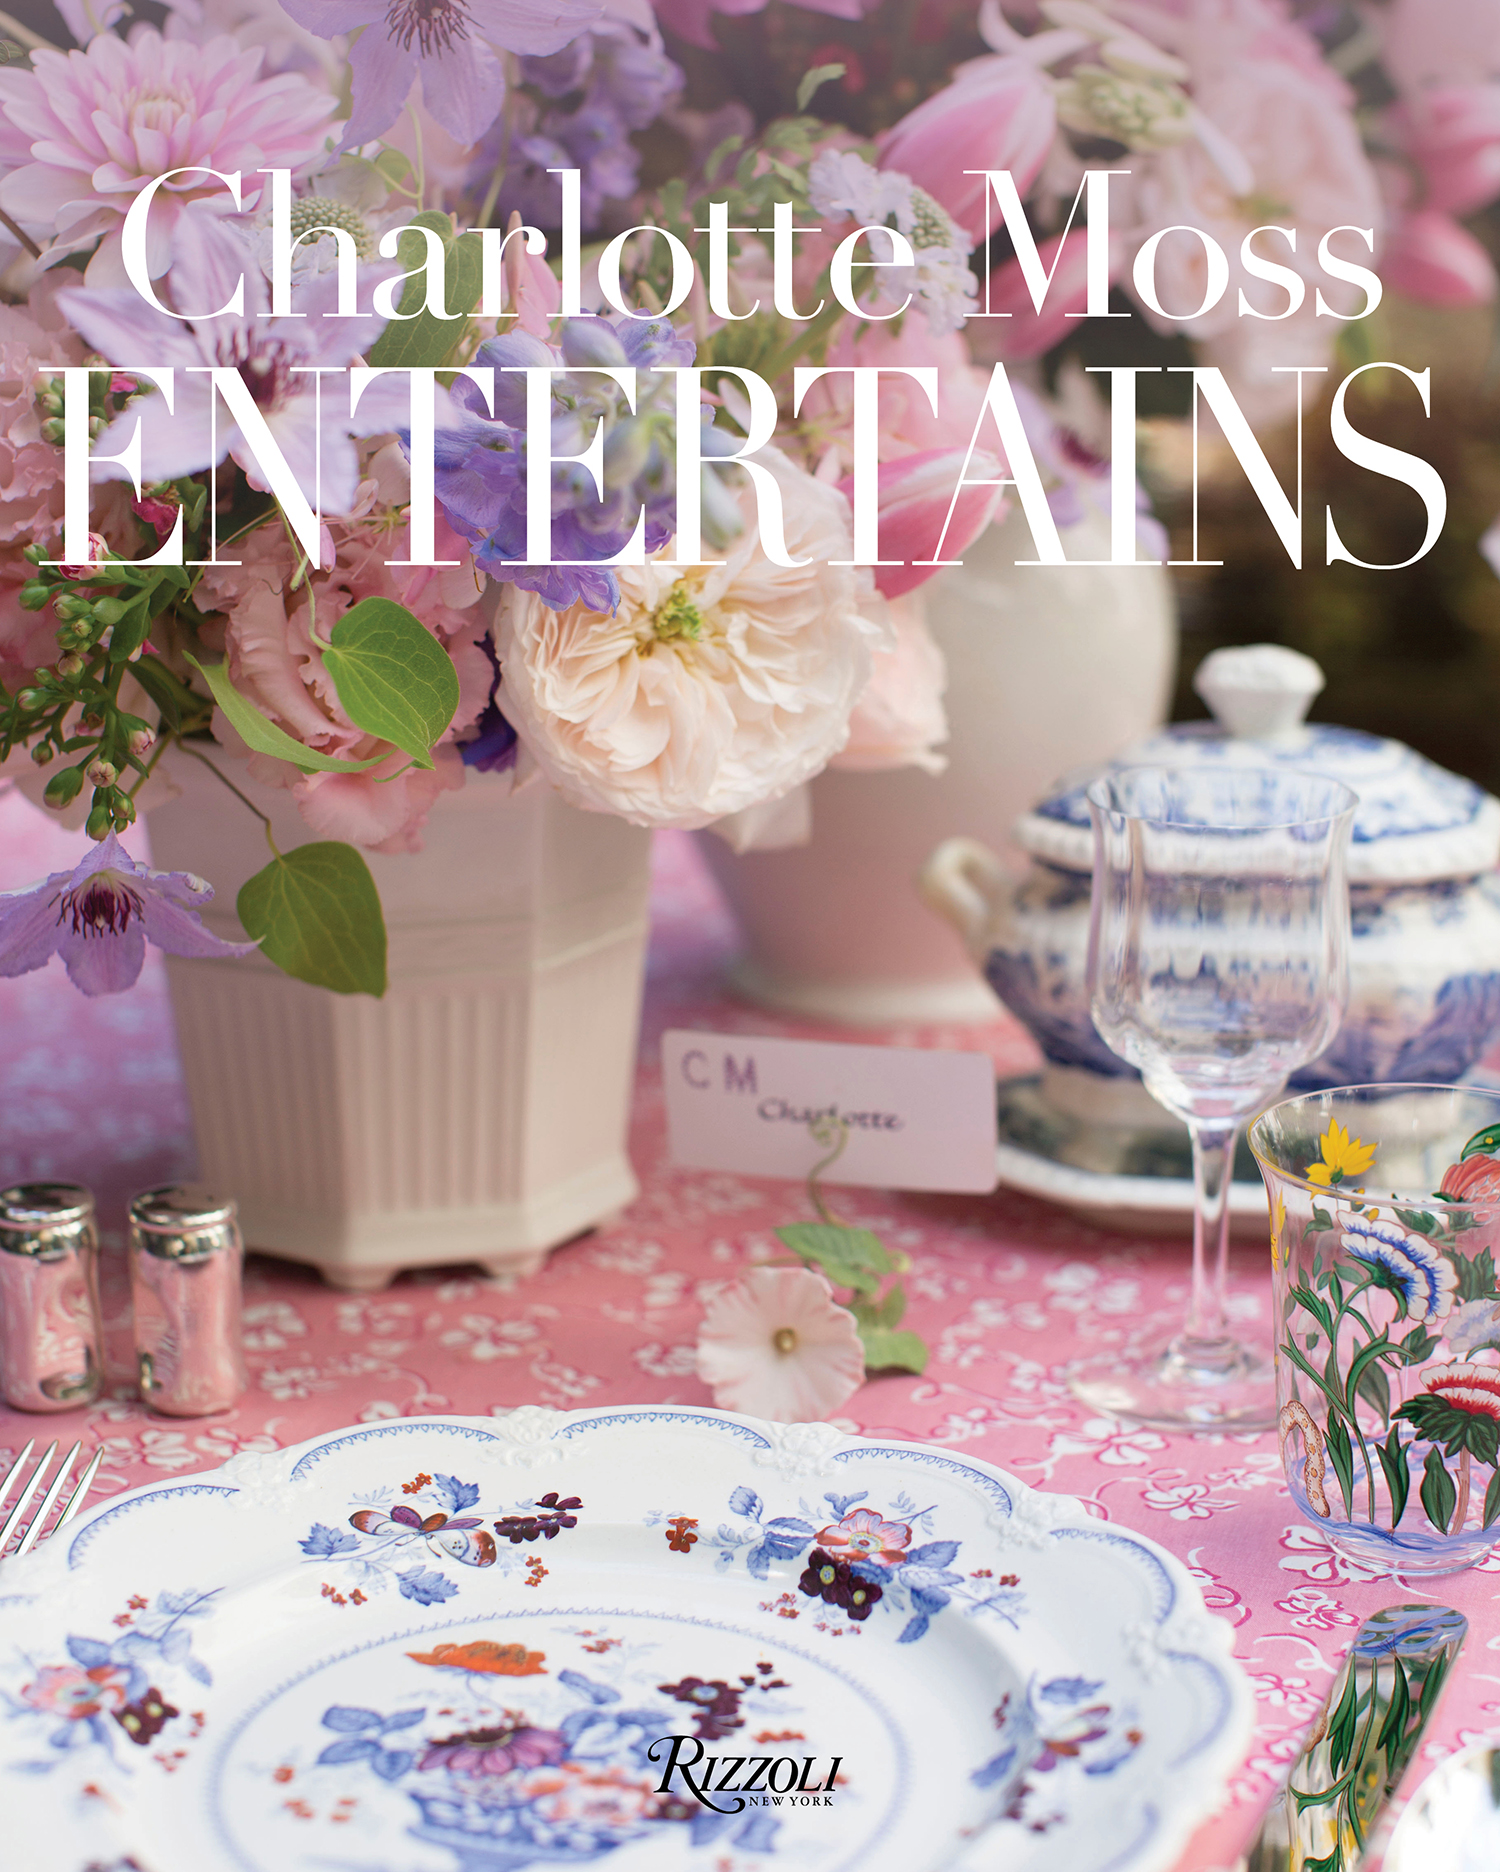 Charlotte Moss Entertains | Rizzoli